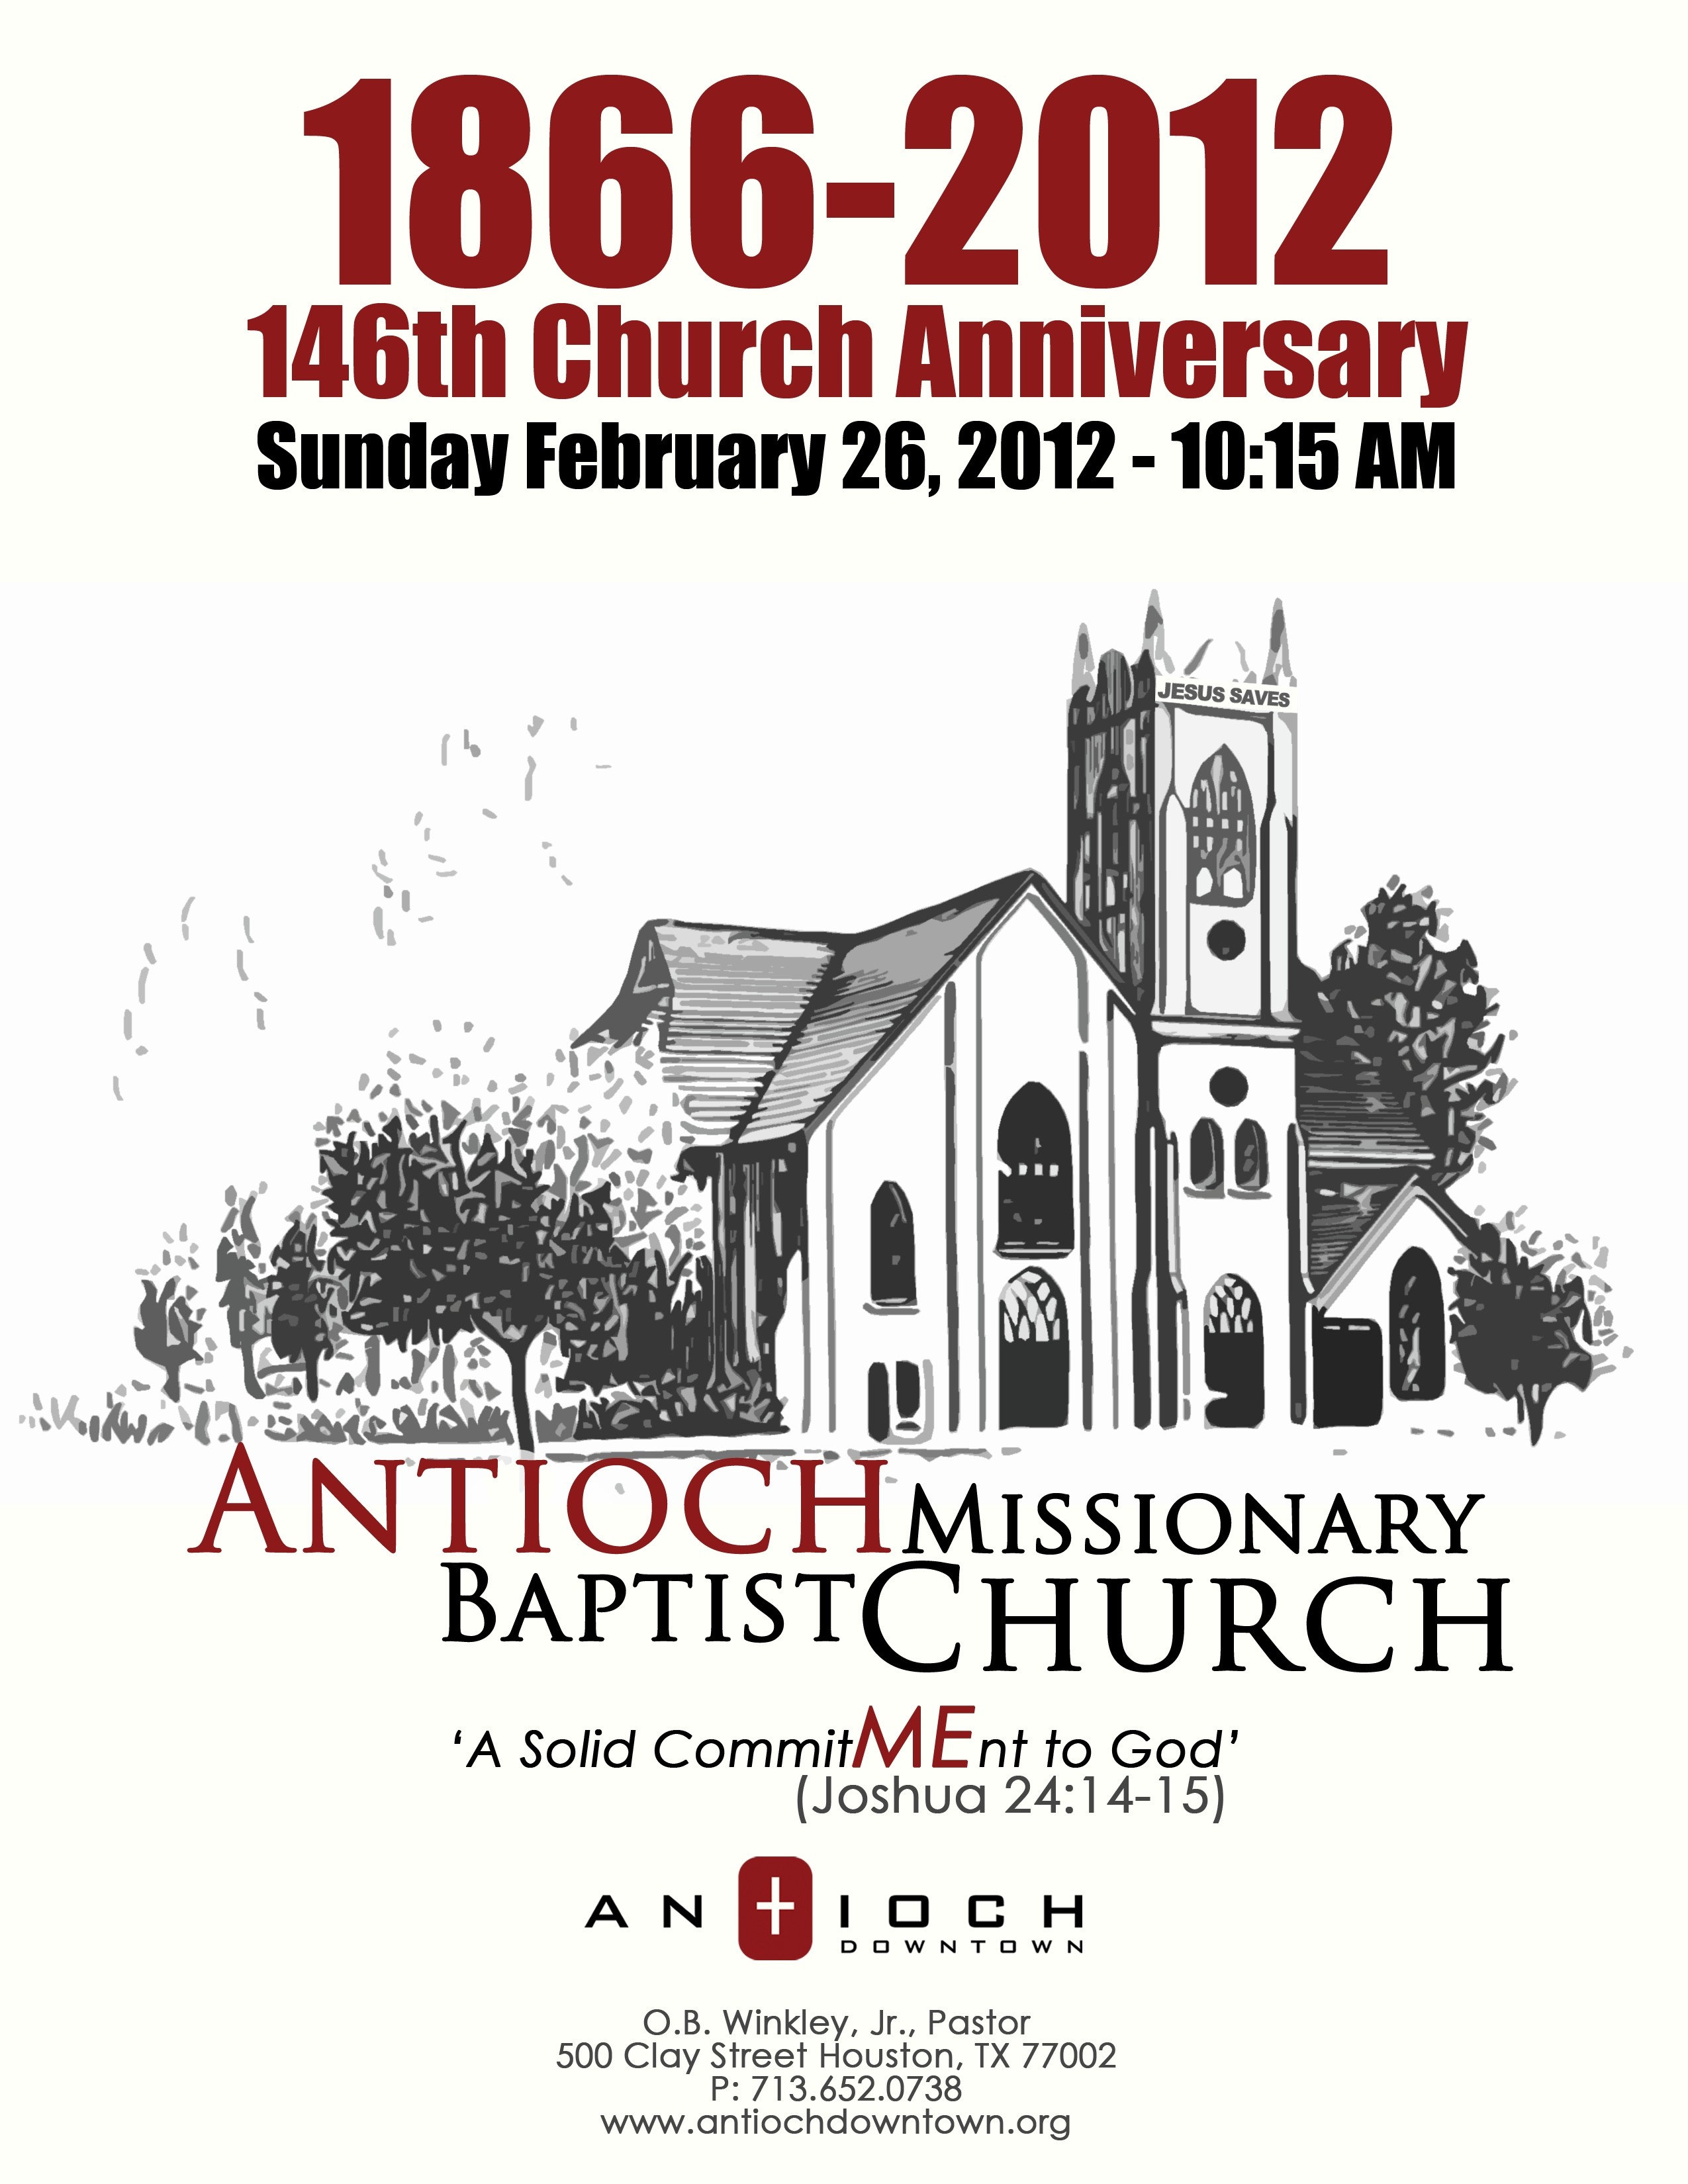 75th anniversary christian church clipart free PNG and cliparts for.